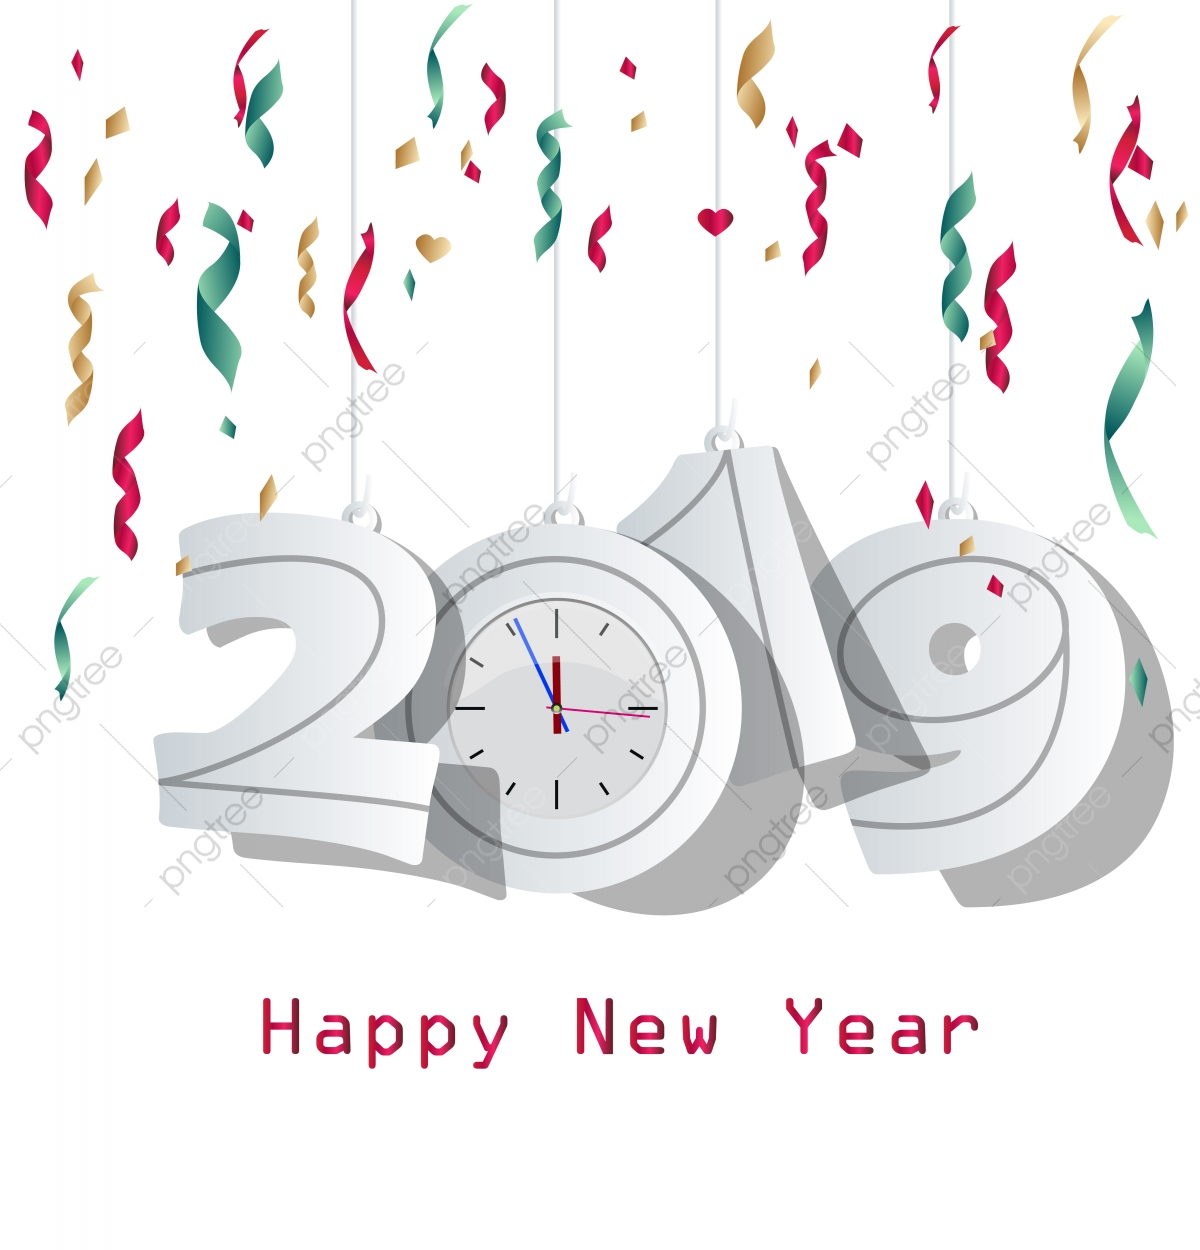 Happy New Year 2019, Happy, White, Wallpaper PNG and Vector with